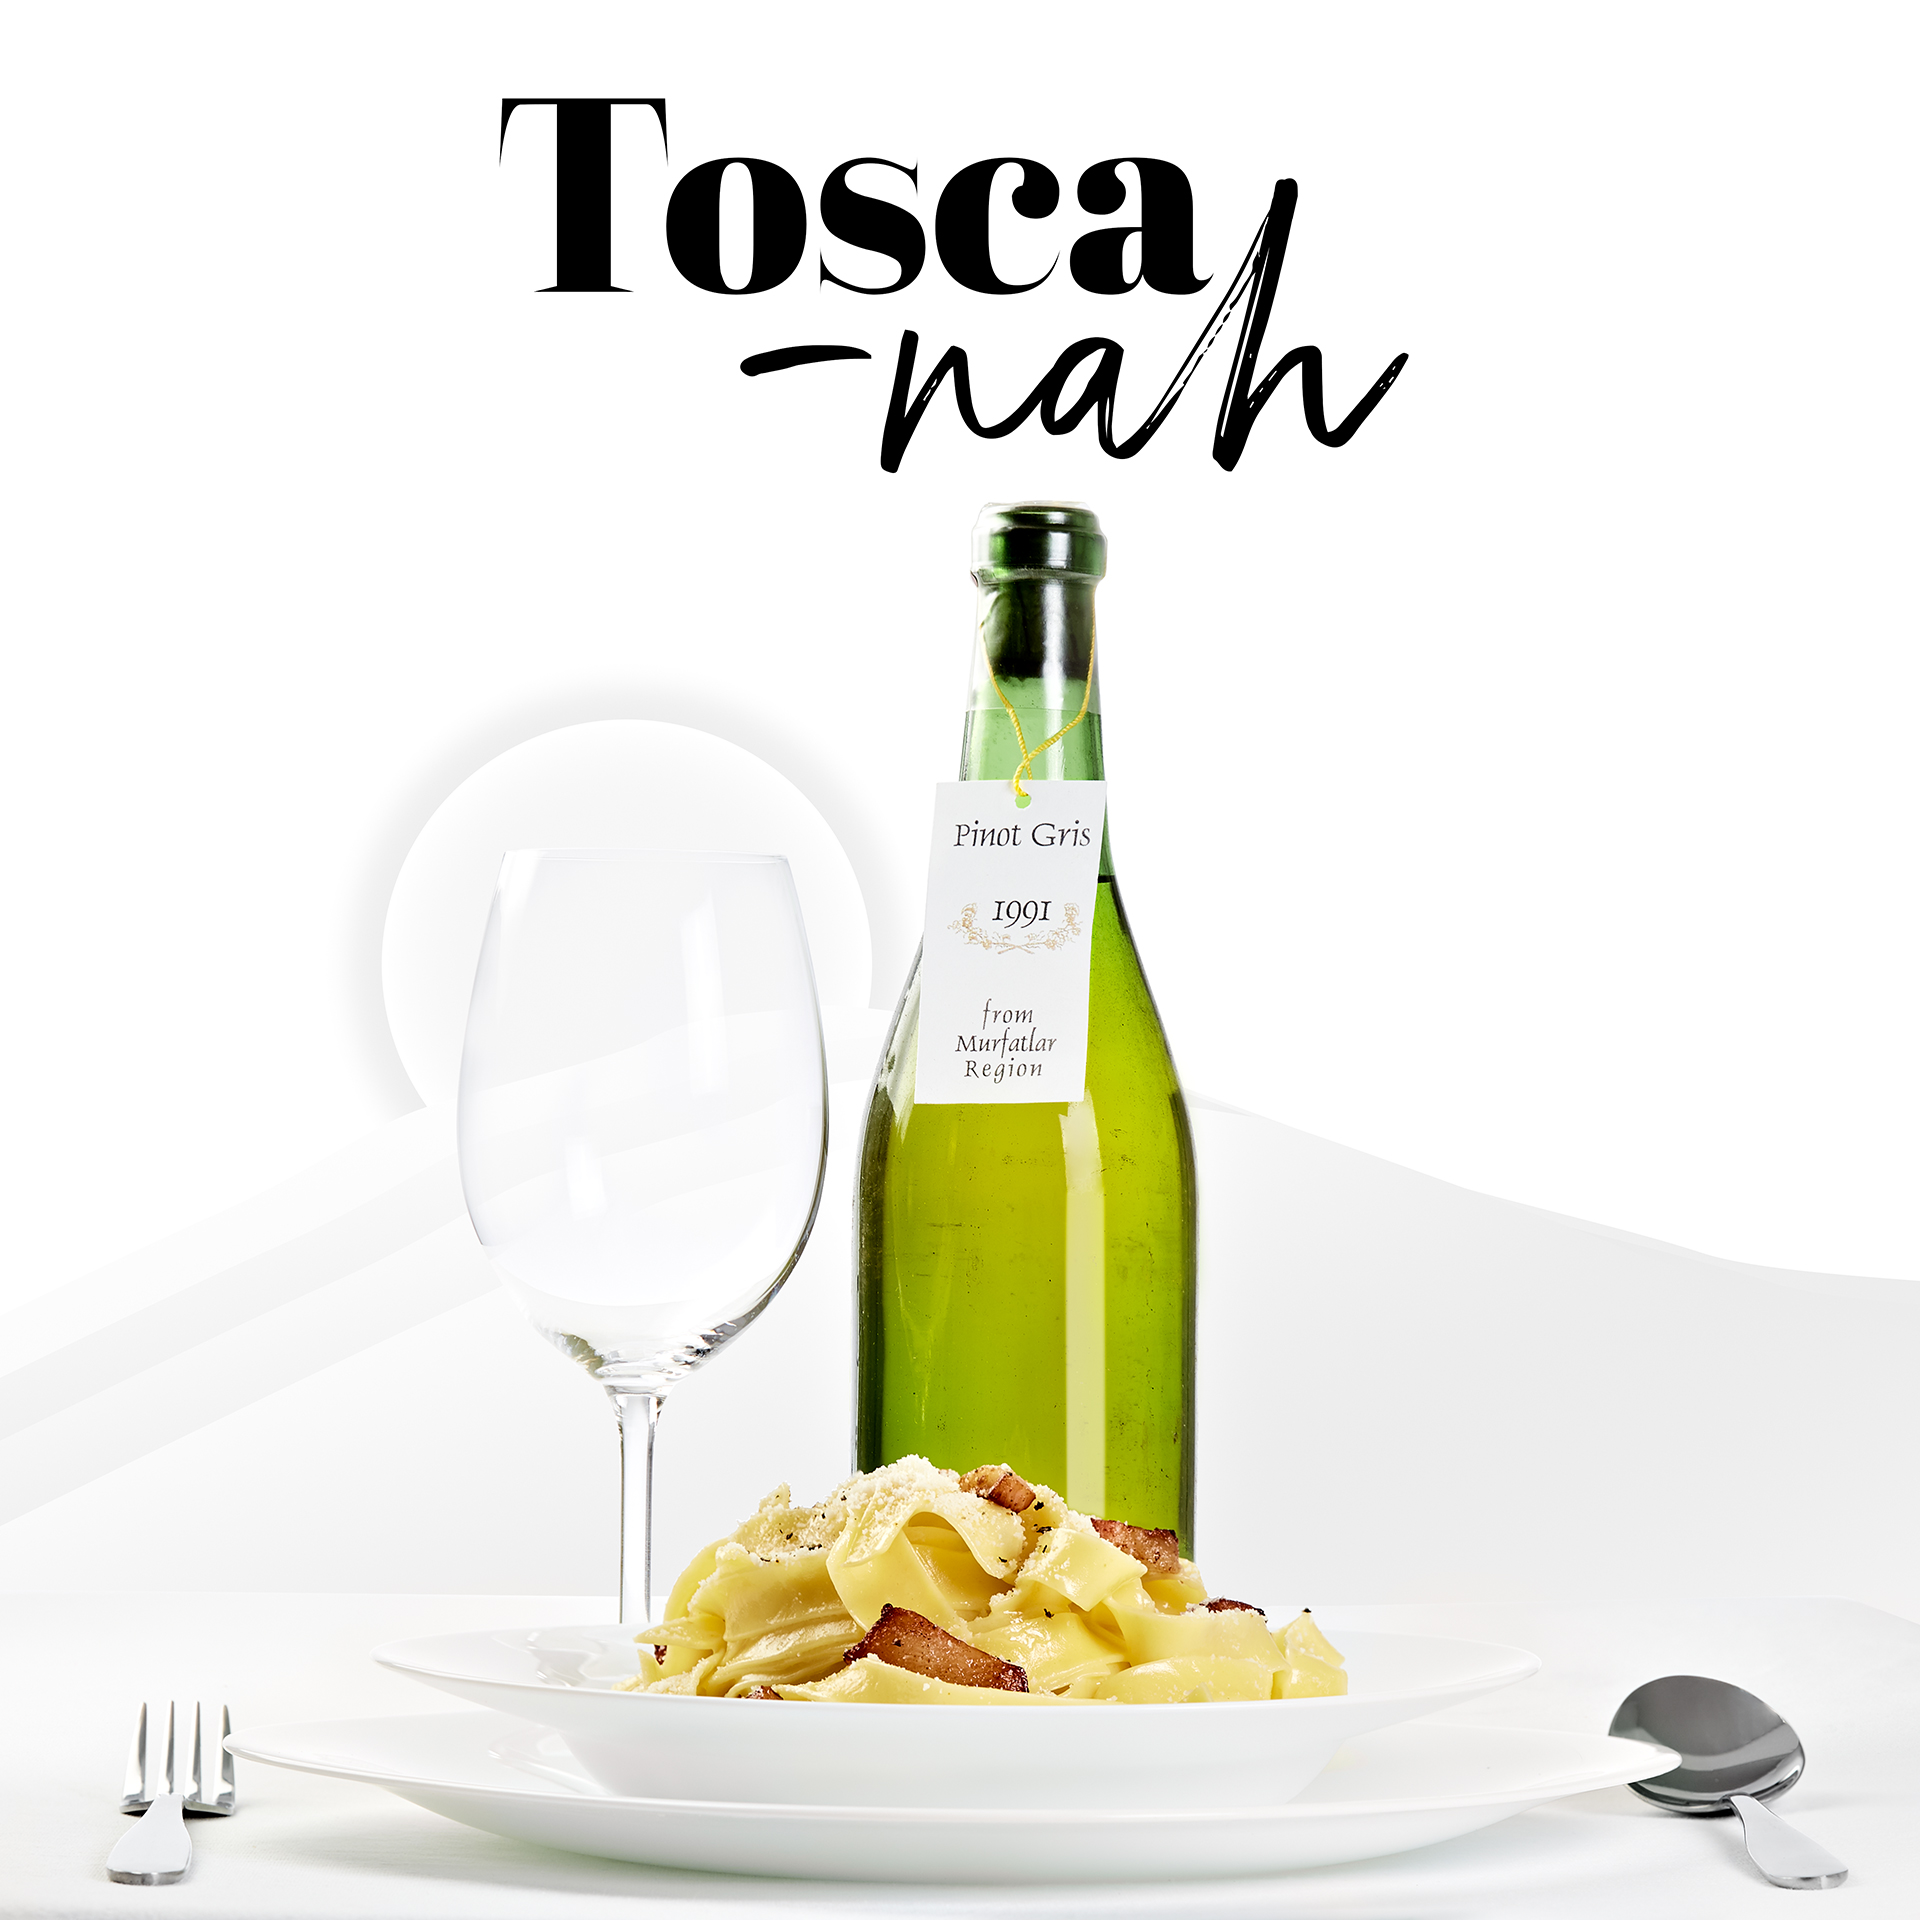 advertorial-concept-food-and-drinks-pasta-and-wine-tosca